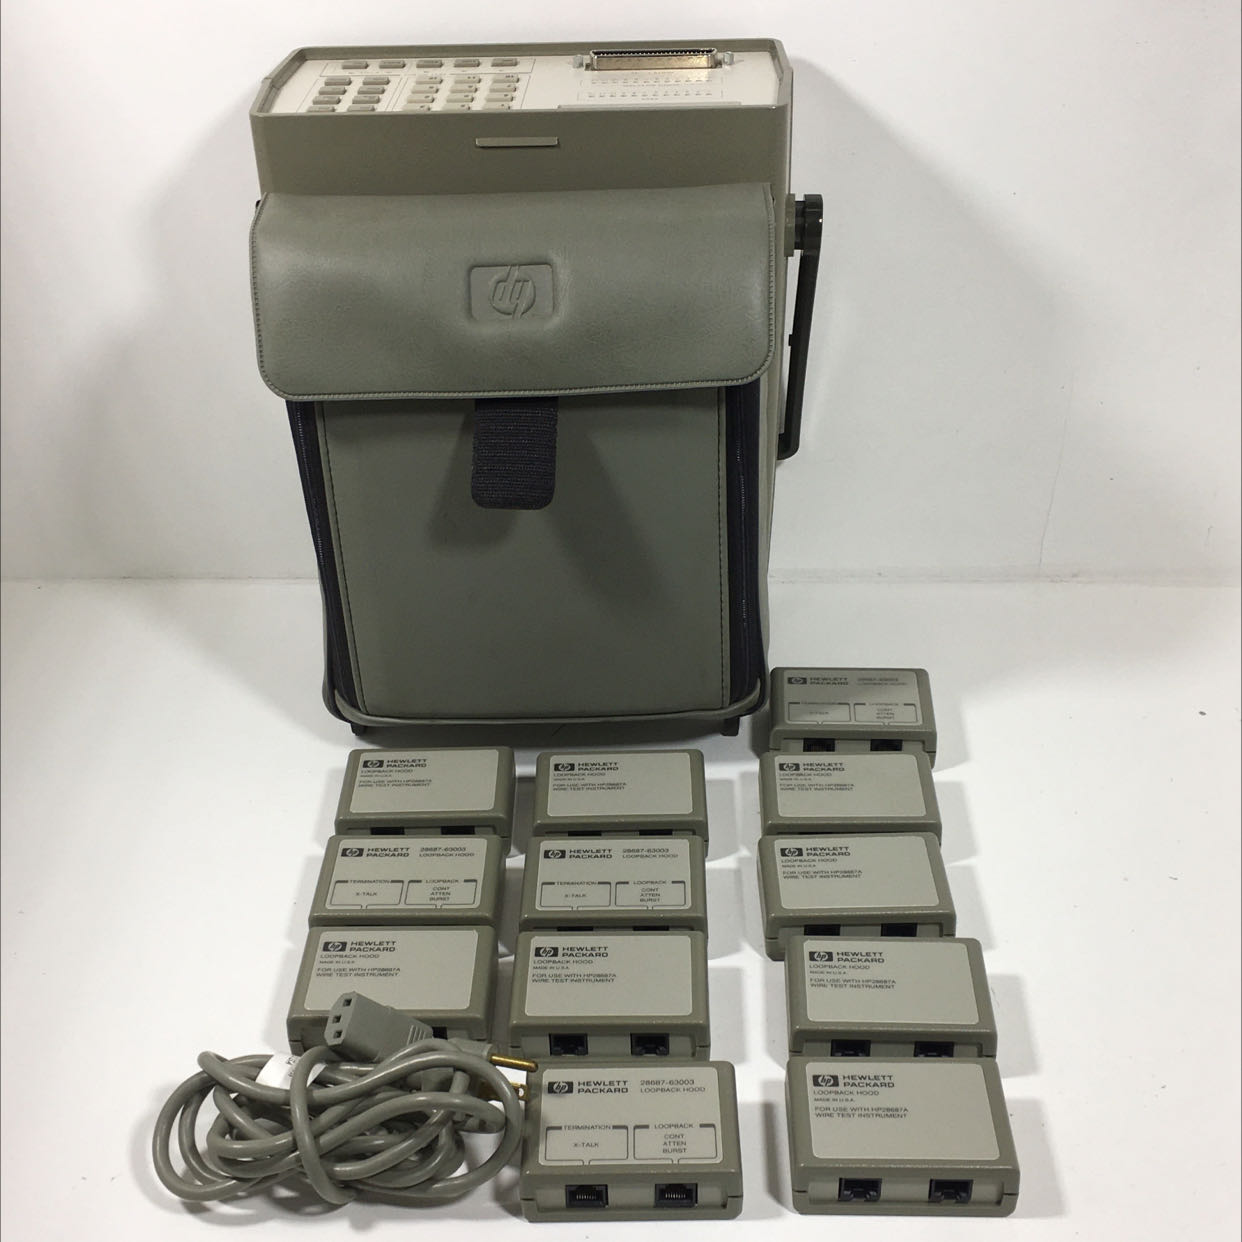 Hewlett Packard 28687A Wire Test Instrument